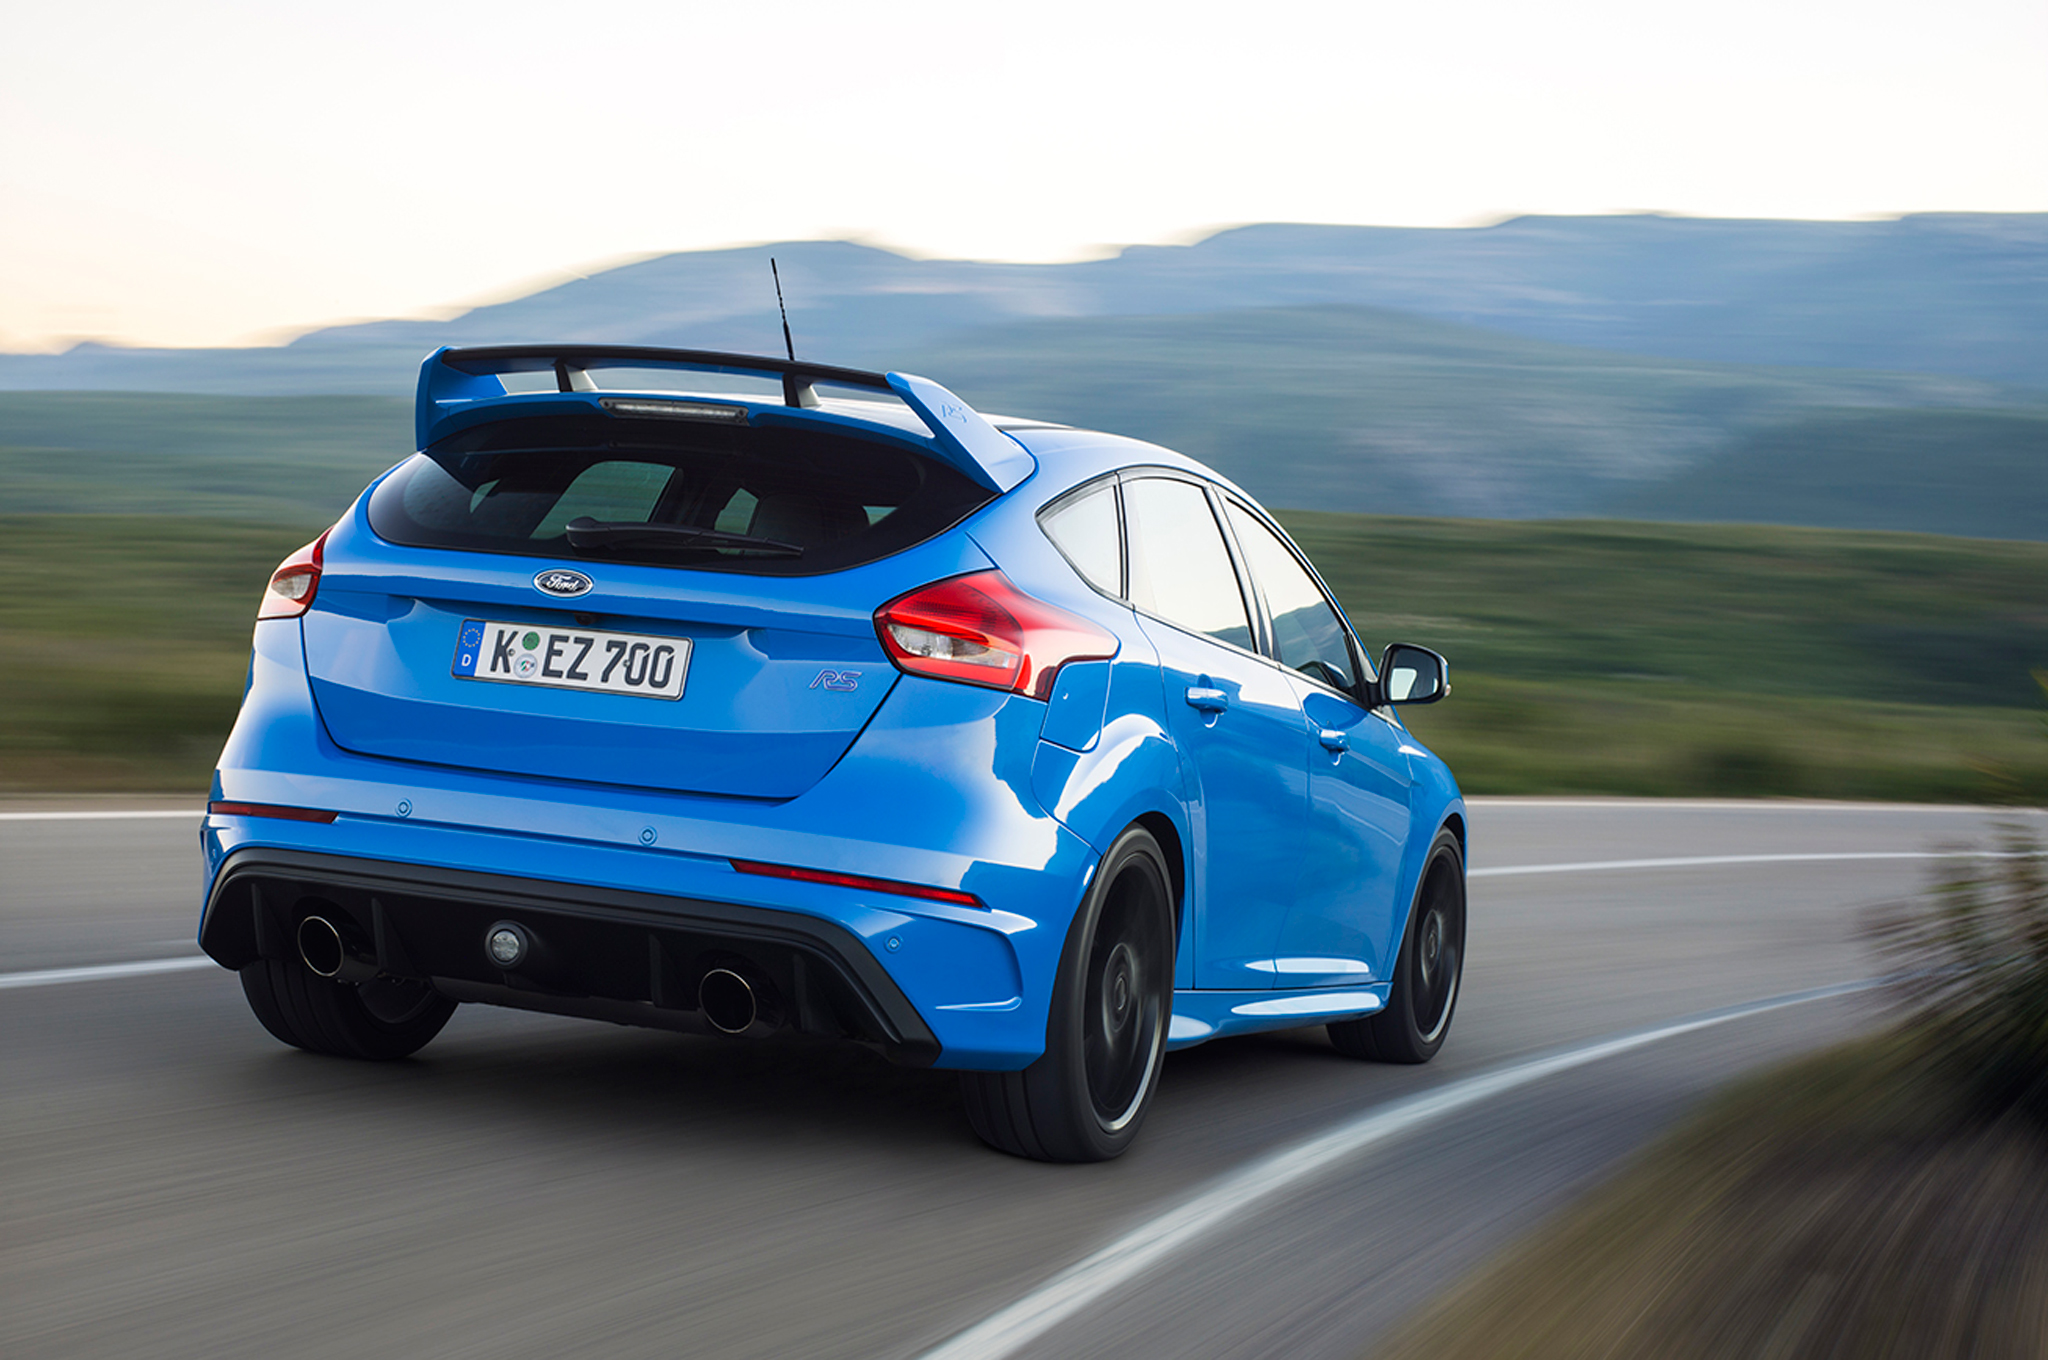 Focus Rs Hp >> Mountune Engine Upgrade Boosts Ford Focus Rs Power To 370 Hp